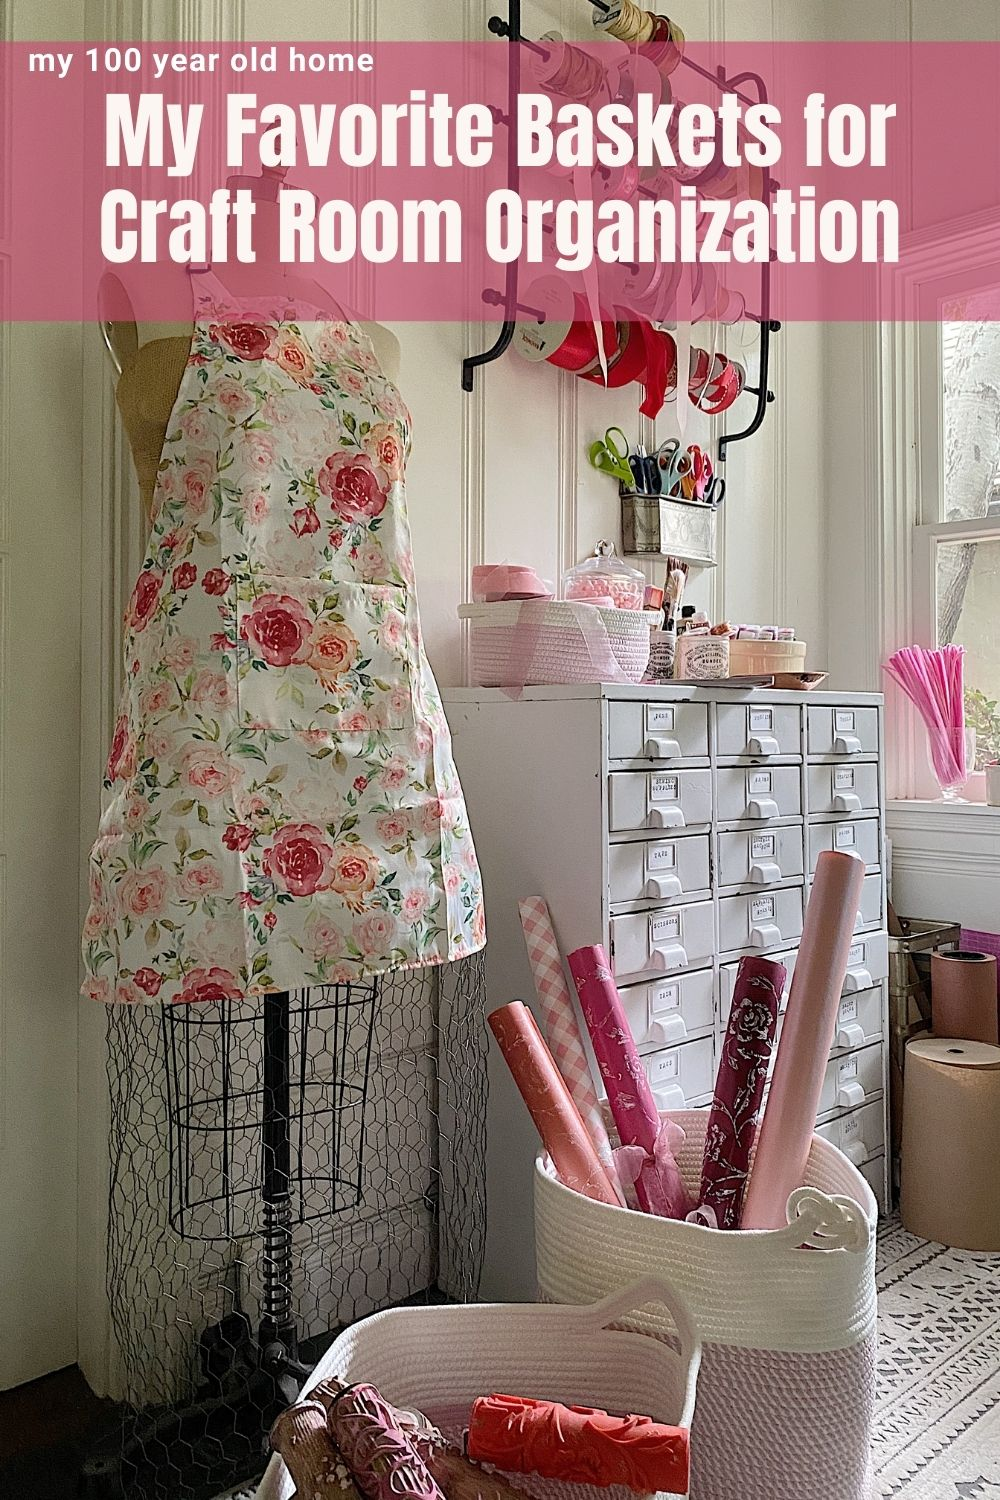 I always struggle with craft room organization because I want to use items that are practical and look good. These pink and white decorative storage baskets are perfect!